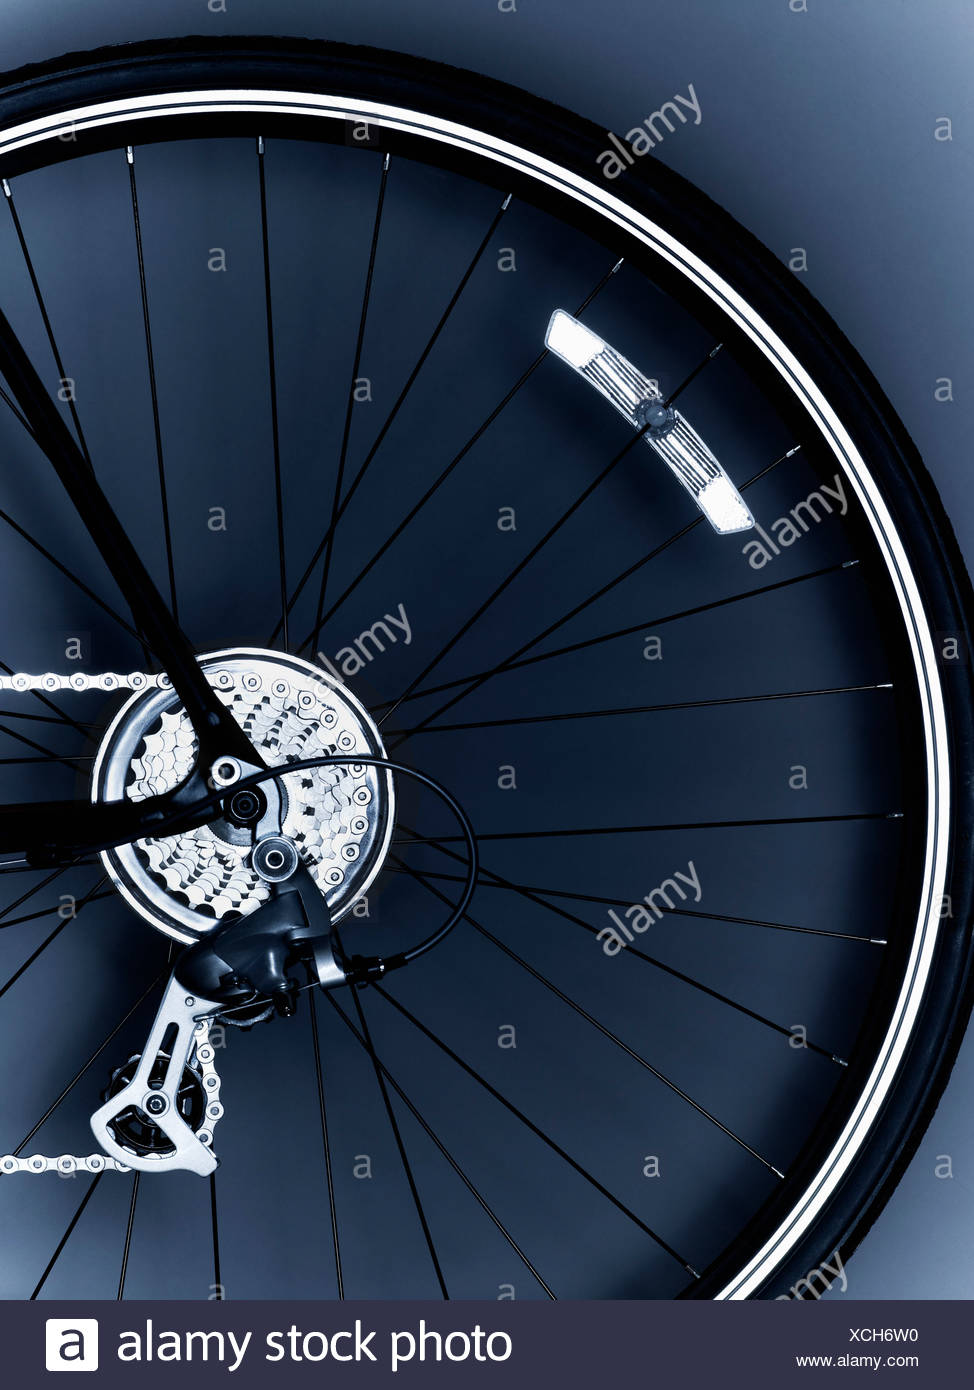 bicycle,bicycle gear,bicycle tire,chain,close up,cog,color image,detail,gear,no people,photography,spoke,studio - Stock Image